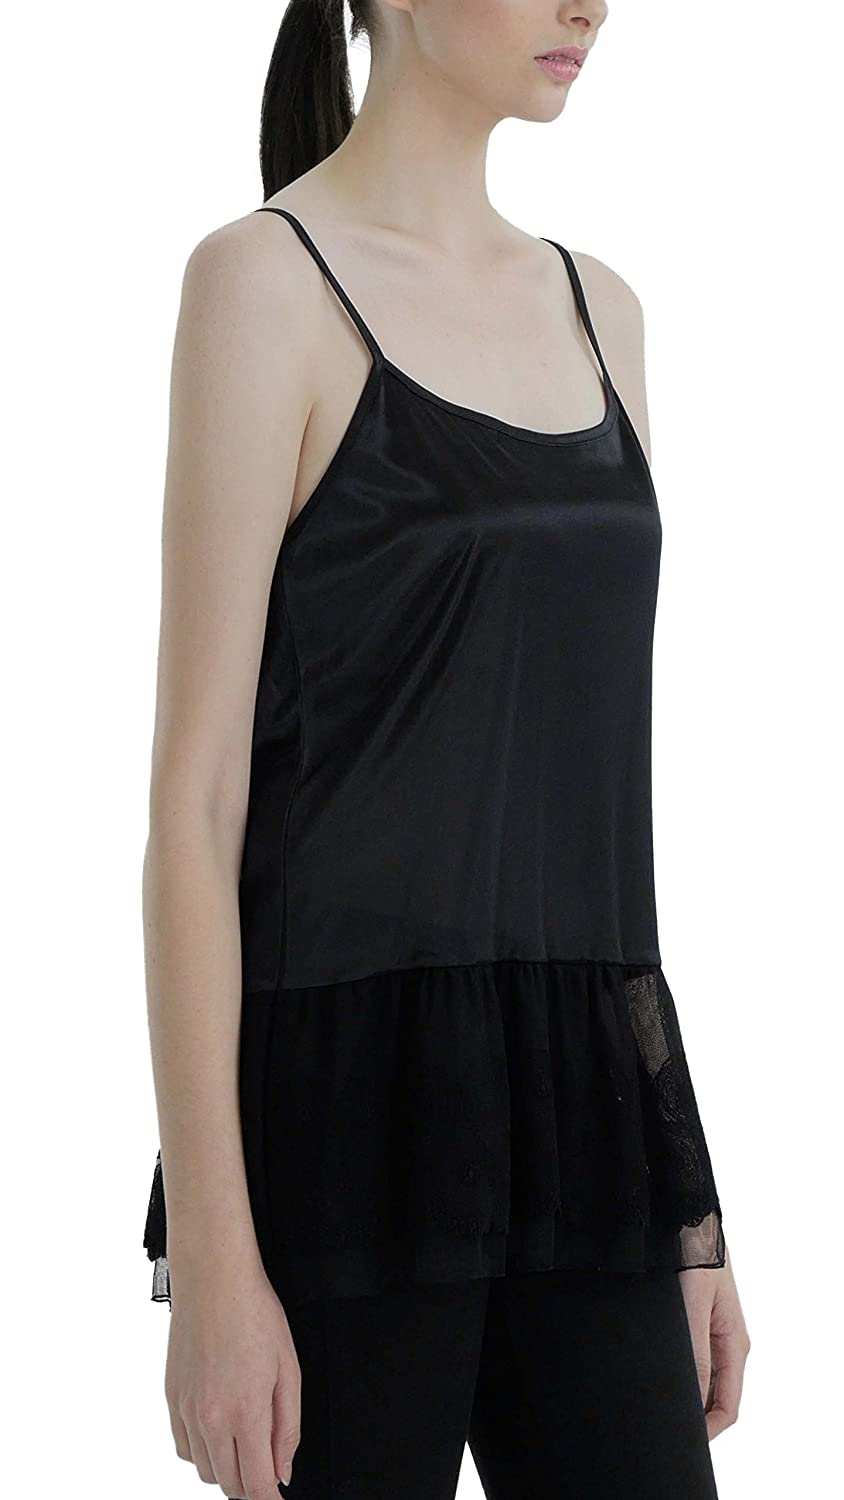 Womens Satin Top Extender Camisole Slip with Circle Lace on The Bottom Shop Lev